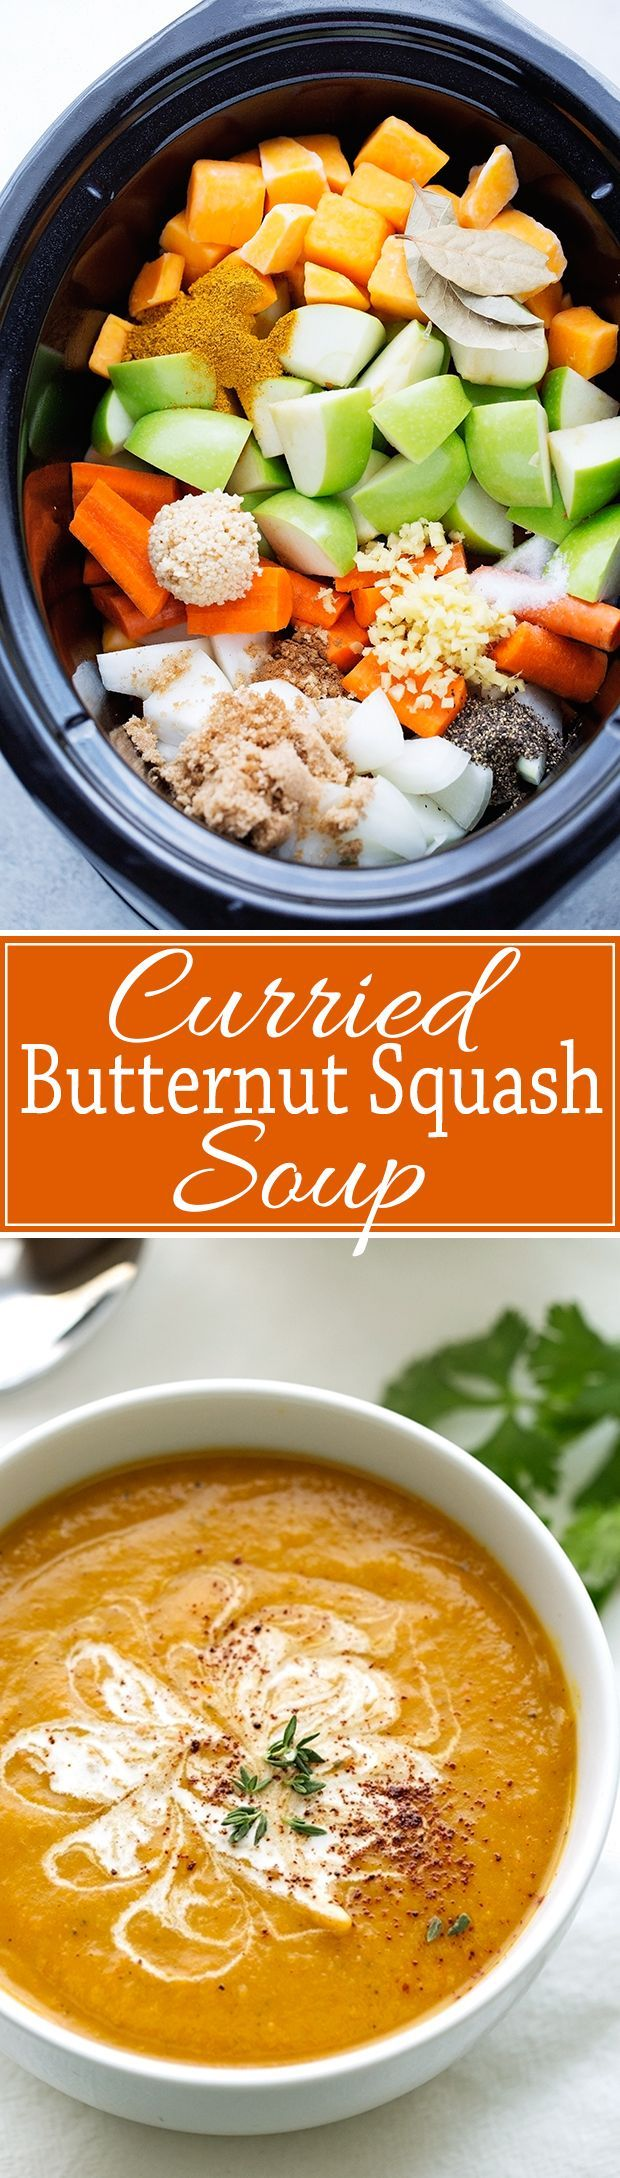 Curried Butternut Squash Soup {Slow Cooker} - Smooth, creamy, and super comforting curried Butternut Squash Soup made in the slow cooker.  | Littlespicejar.com